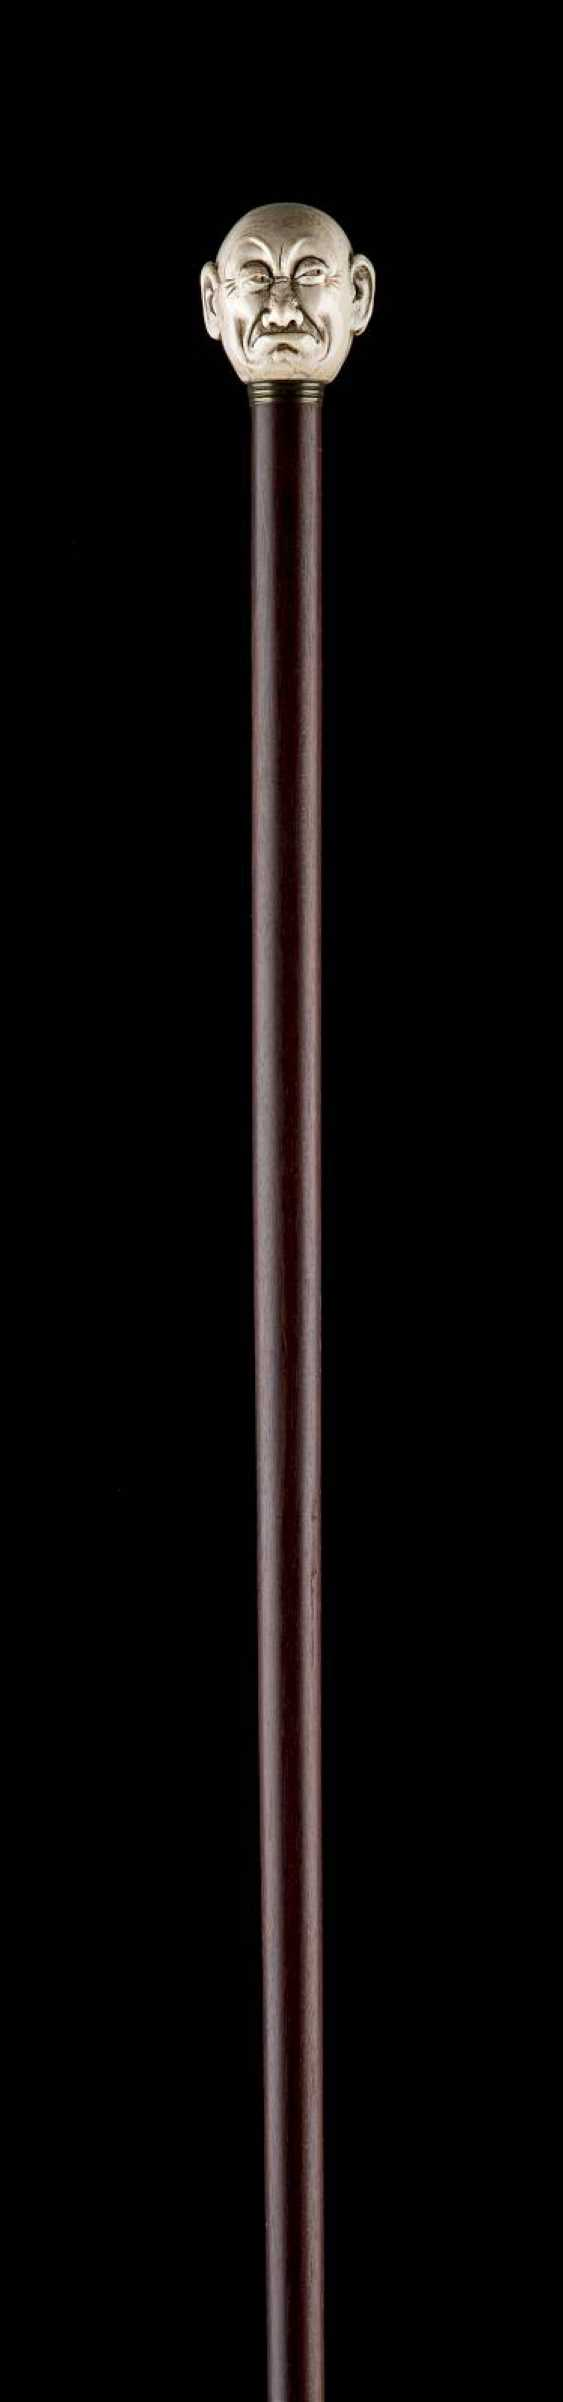 THE JANUS-HEADED ART-DECO-WALKING STICK - photo 1